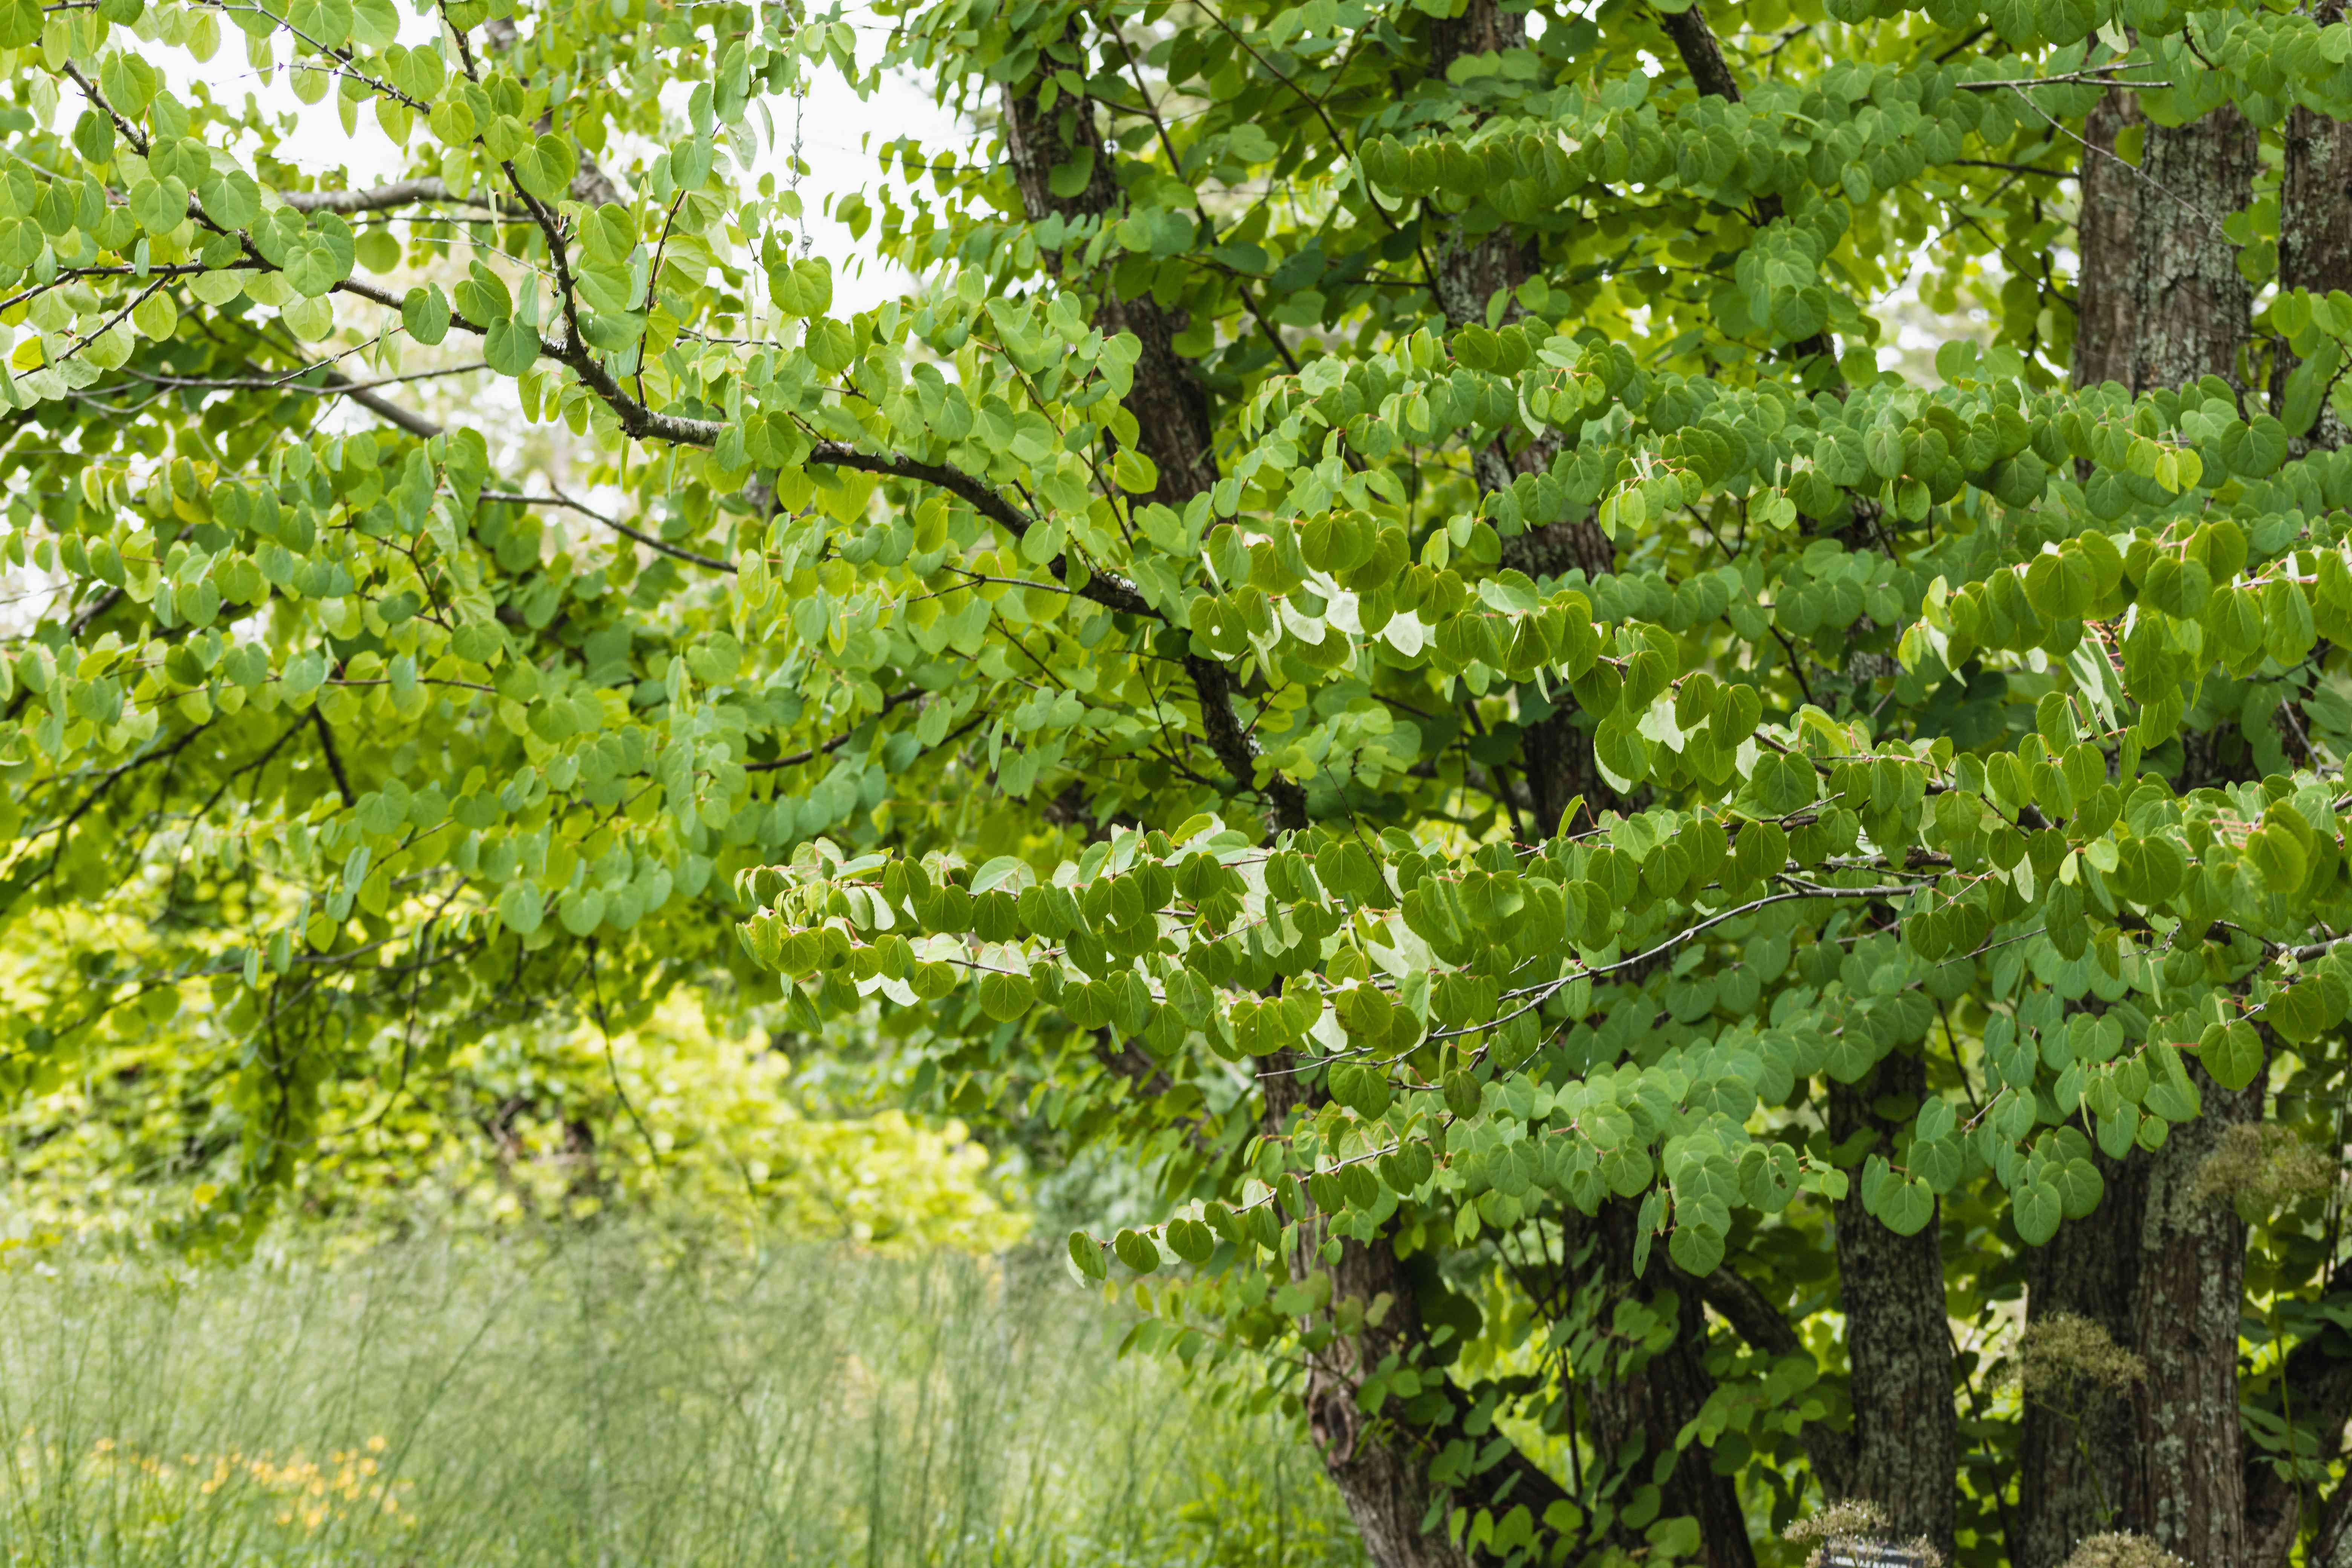 Katsura tree with multi-stem branches full of green leaves